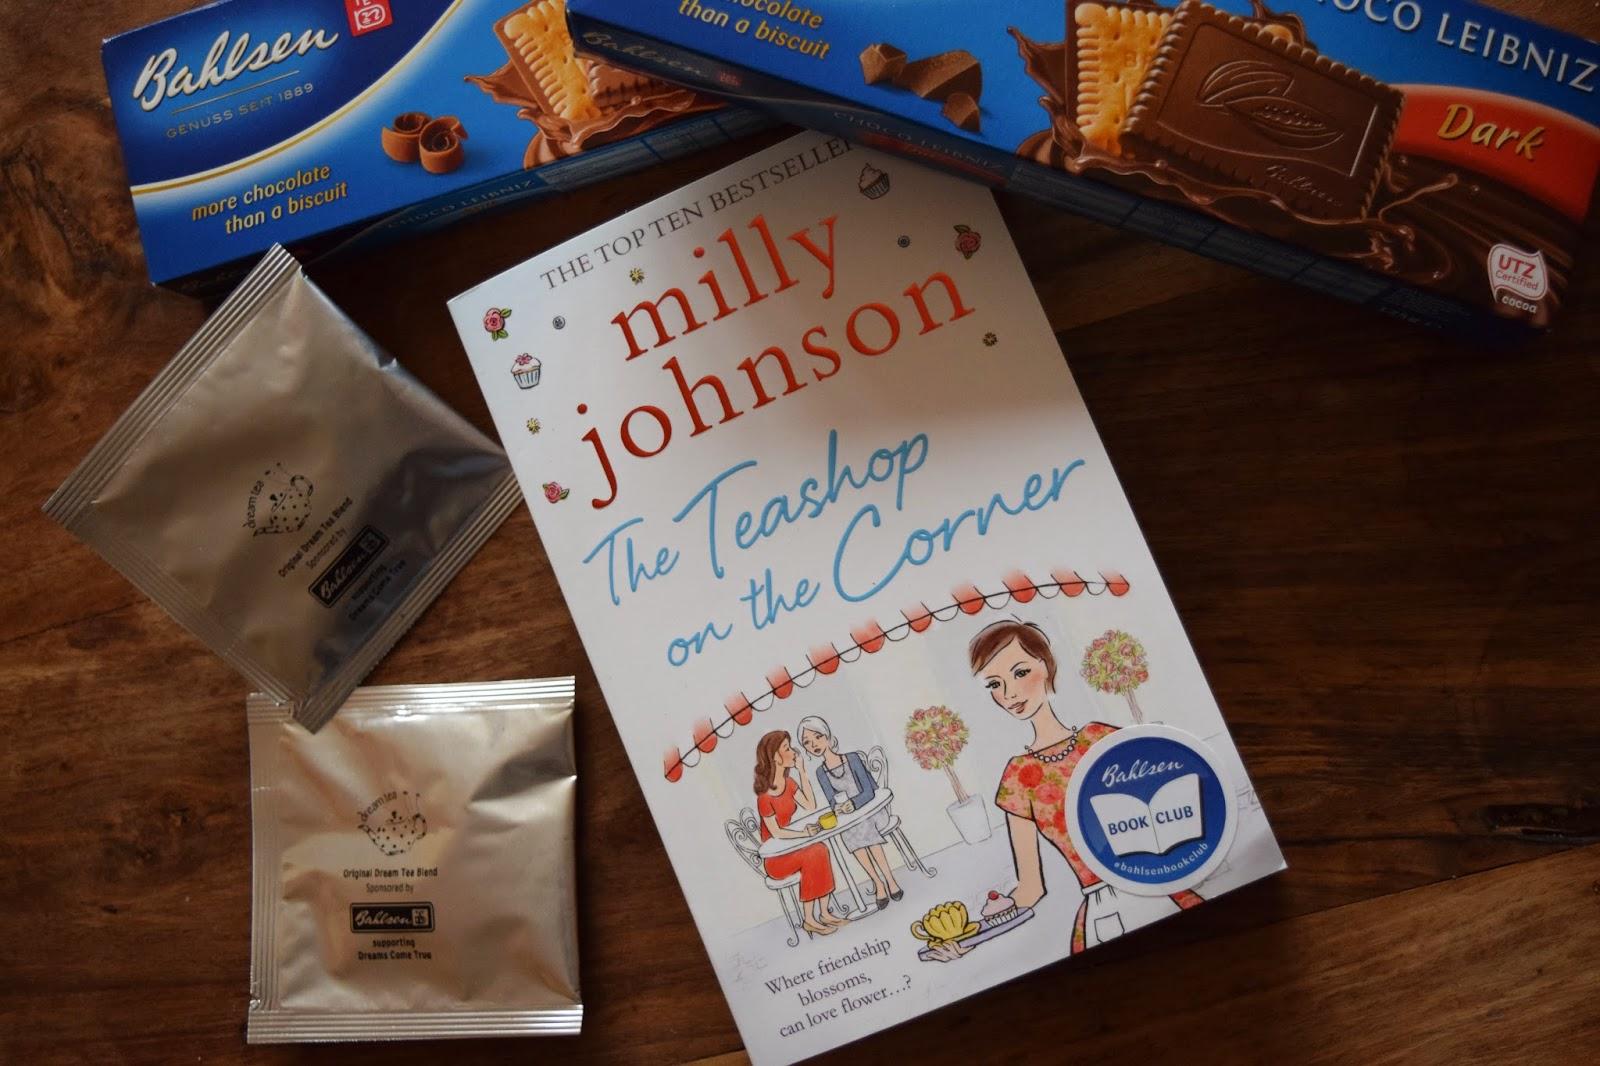 Novel, Milly Johnson, The Teashop on the Corner, book